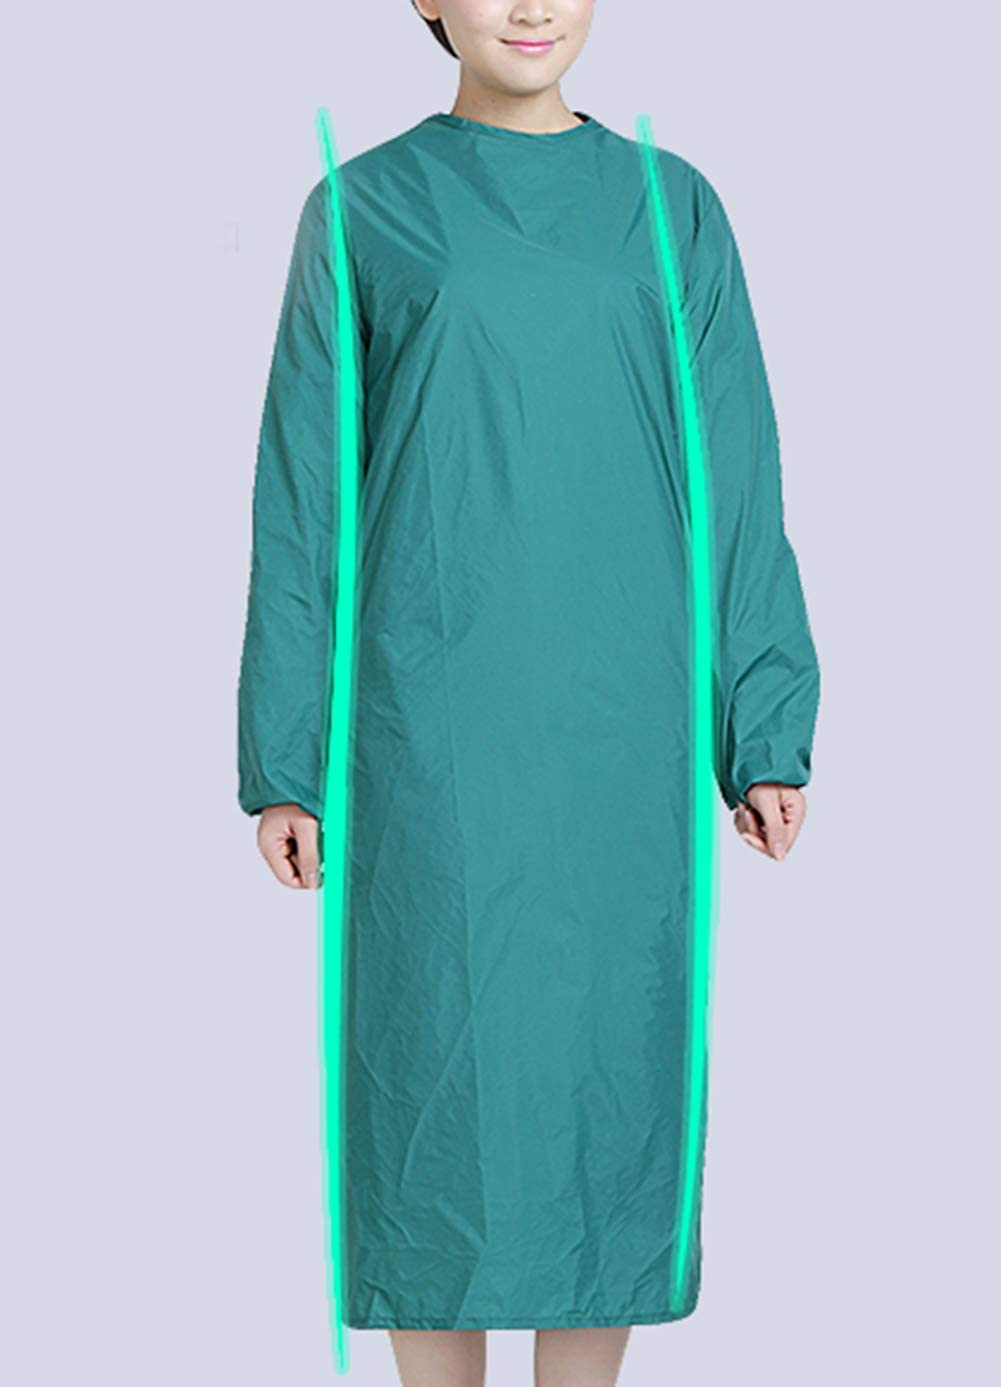 GettyGears Lab Gown with Elastic Cuff Medical Gown Waterproof Surgical Gown Wear Resistant Isolation Gowns Protective Clothing 2XL Blue